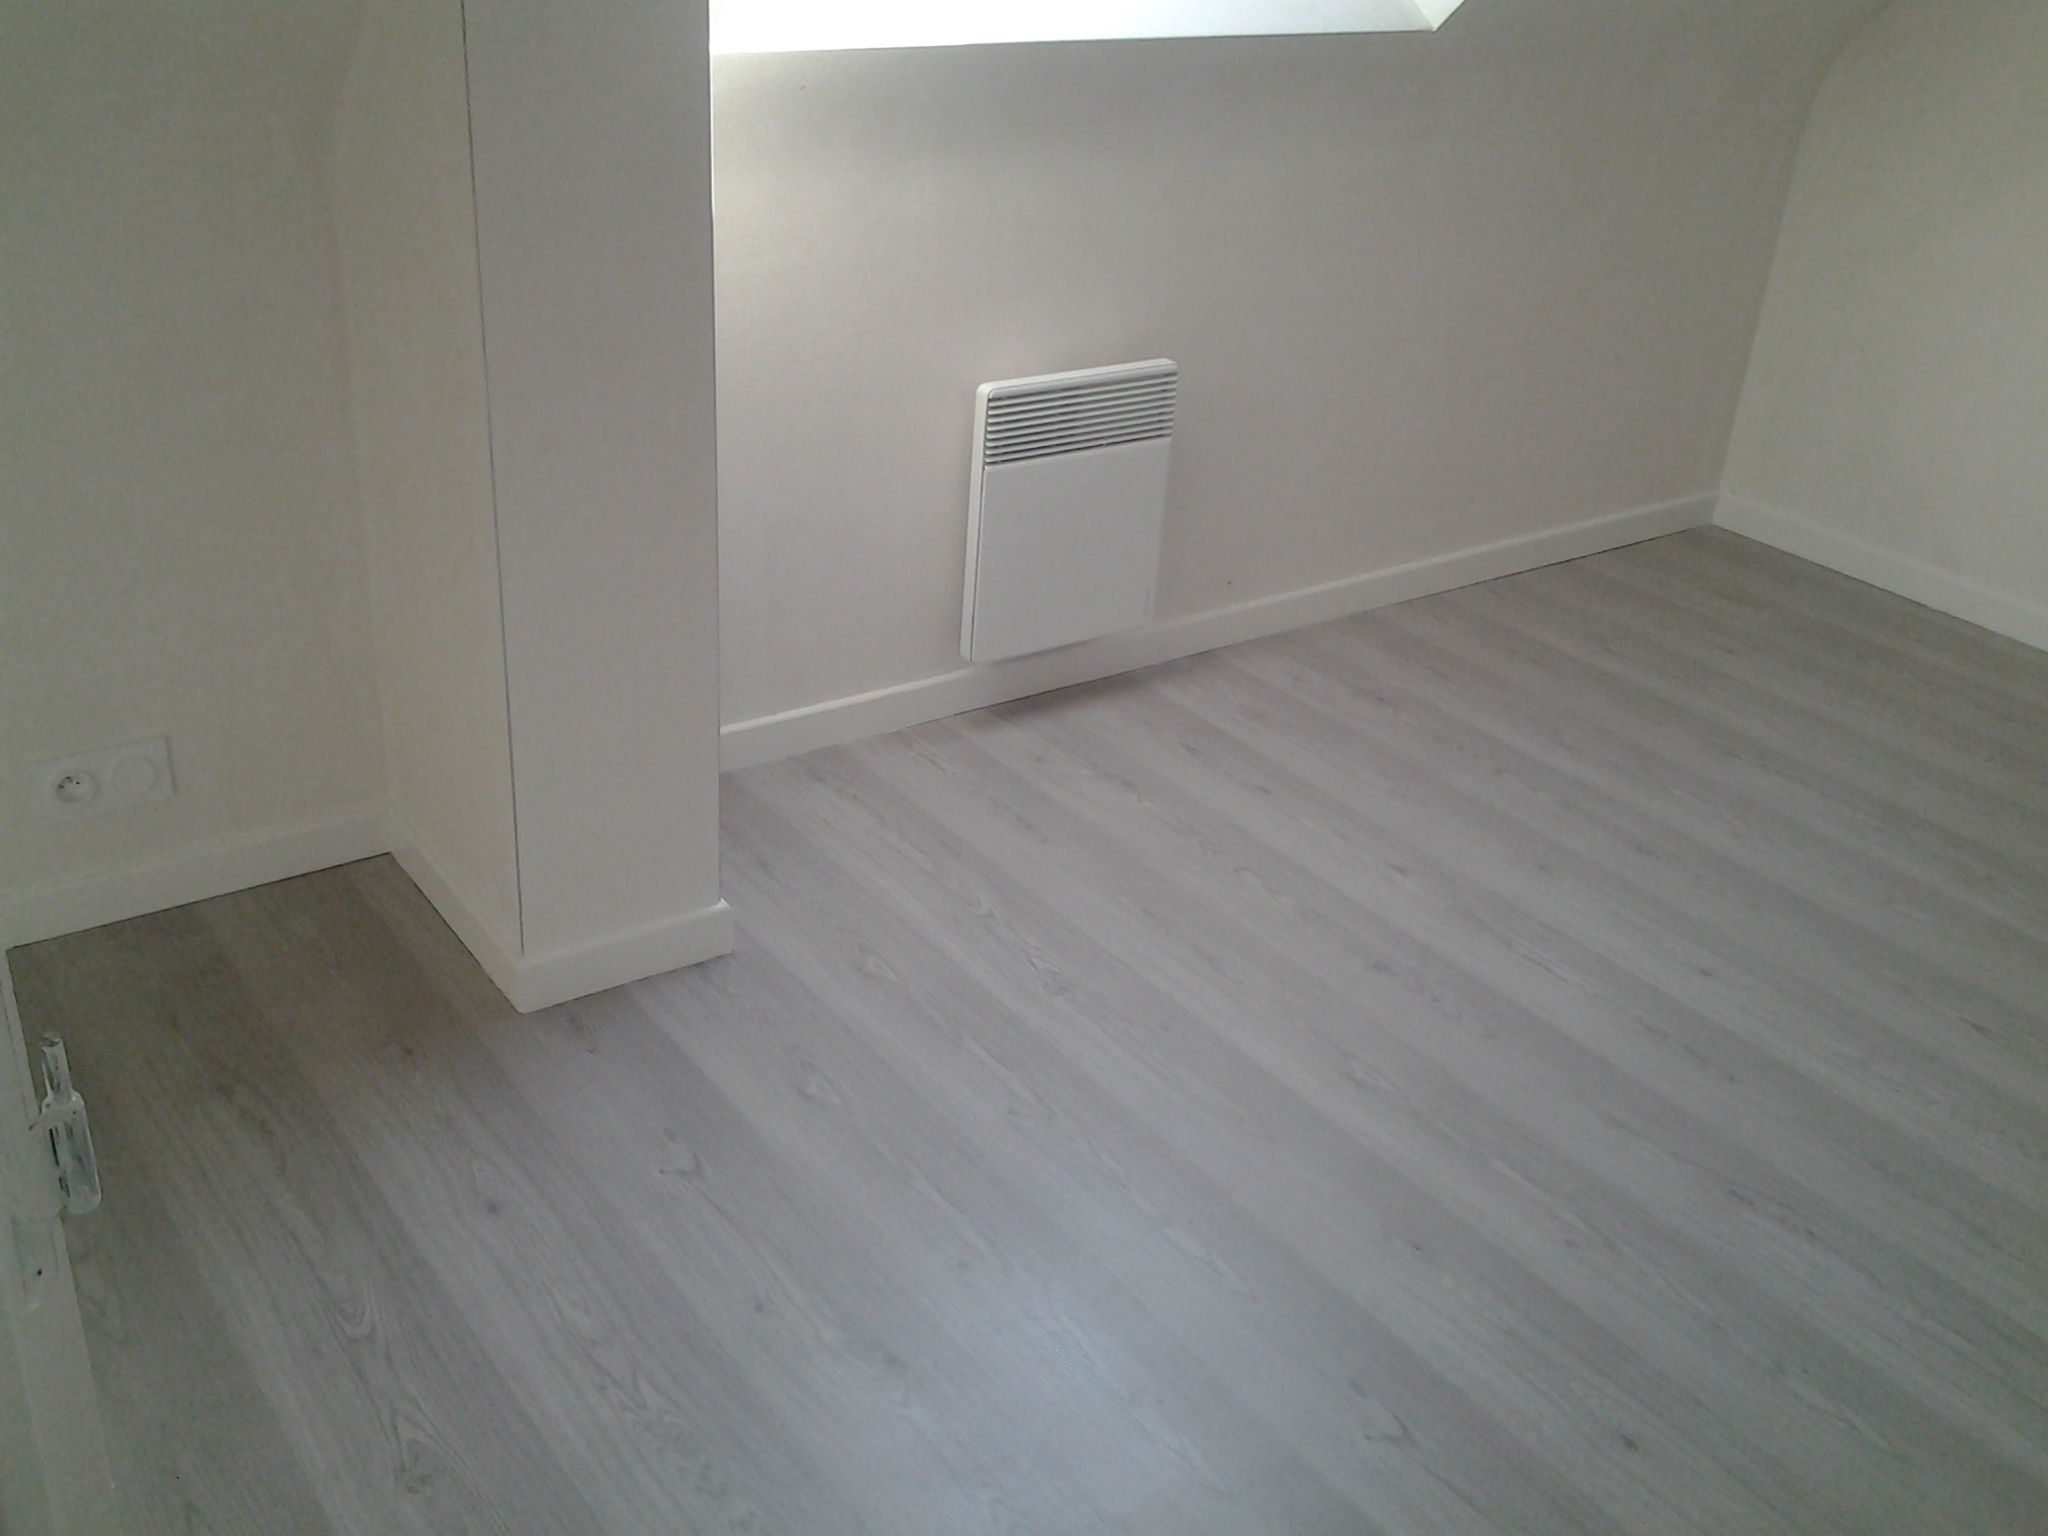 Construction d 39 une maison d 39 habitation berci plerneuf for Pose de plinthe carrelage